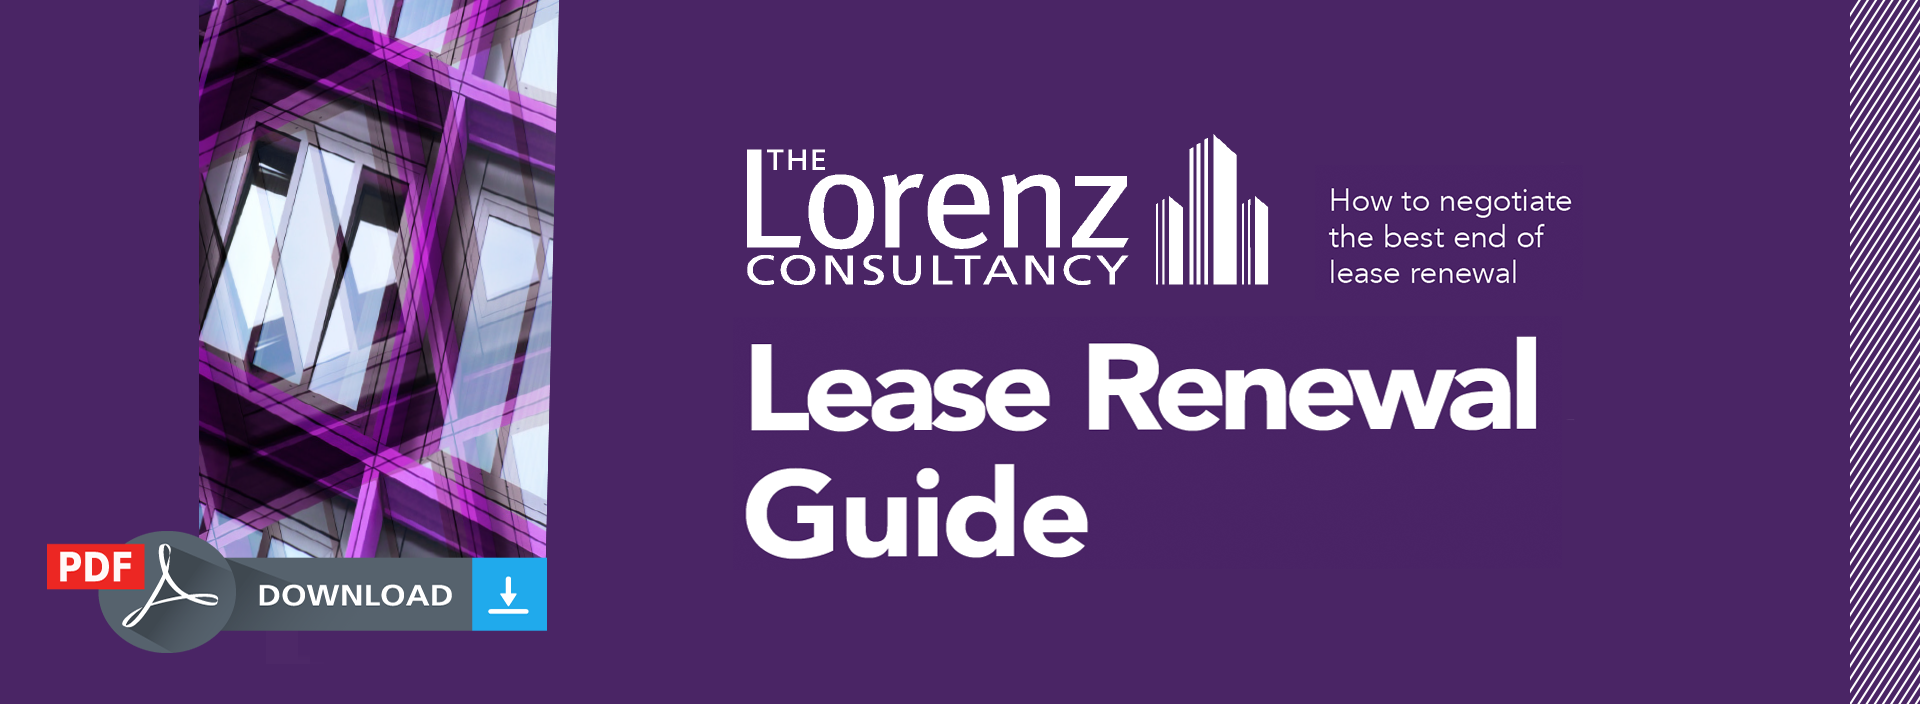 Lease Renewal Guide - Landing Page Header.png